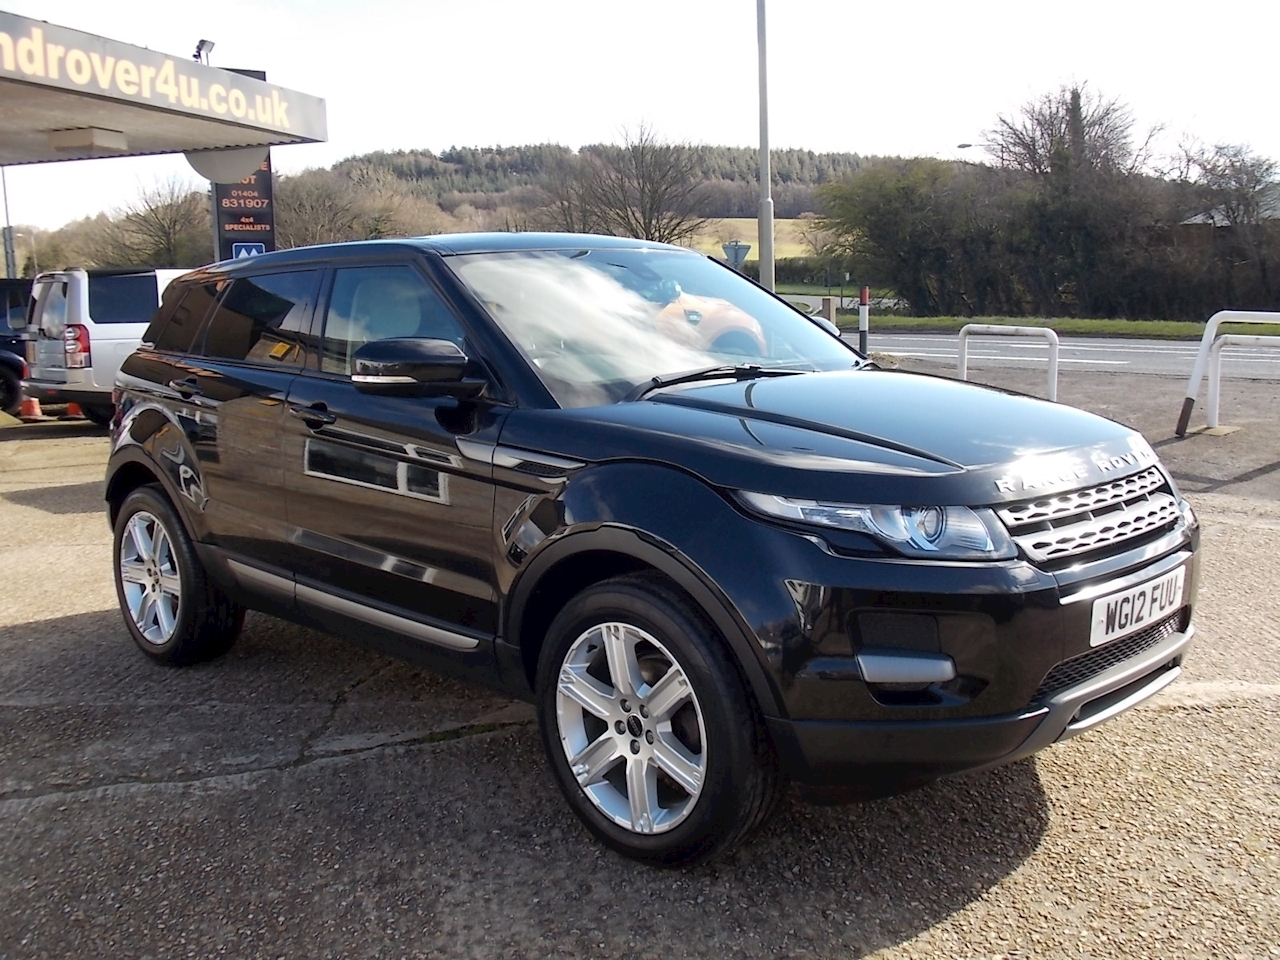 Land Rover Range Rover Evoque Pure Tech SUV 2.2 Manual Diesel